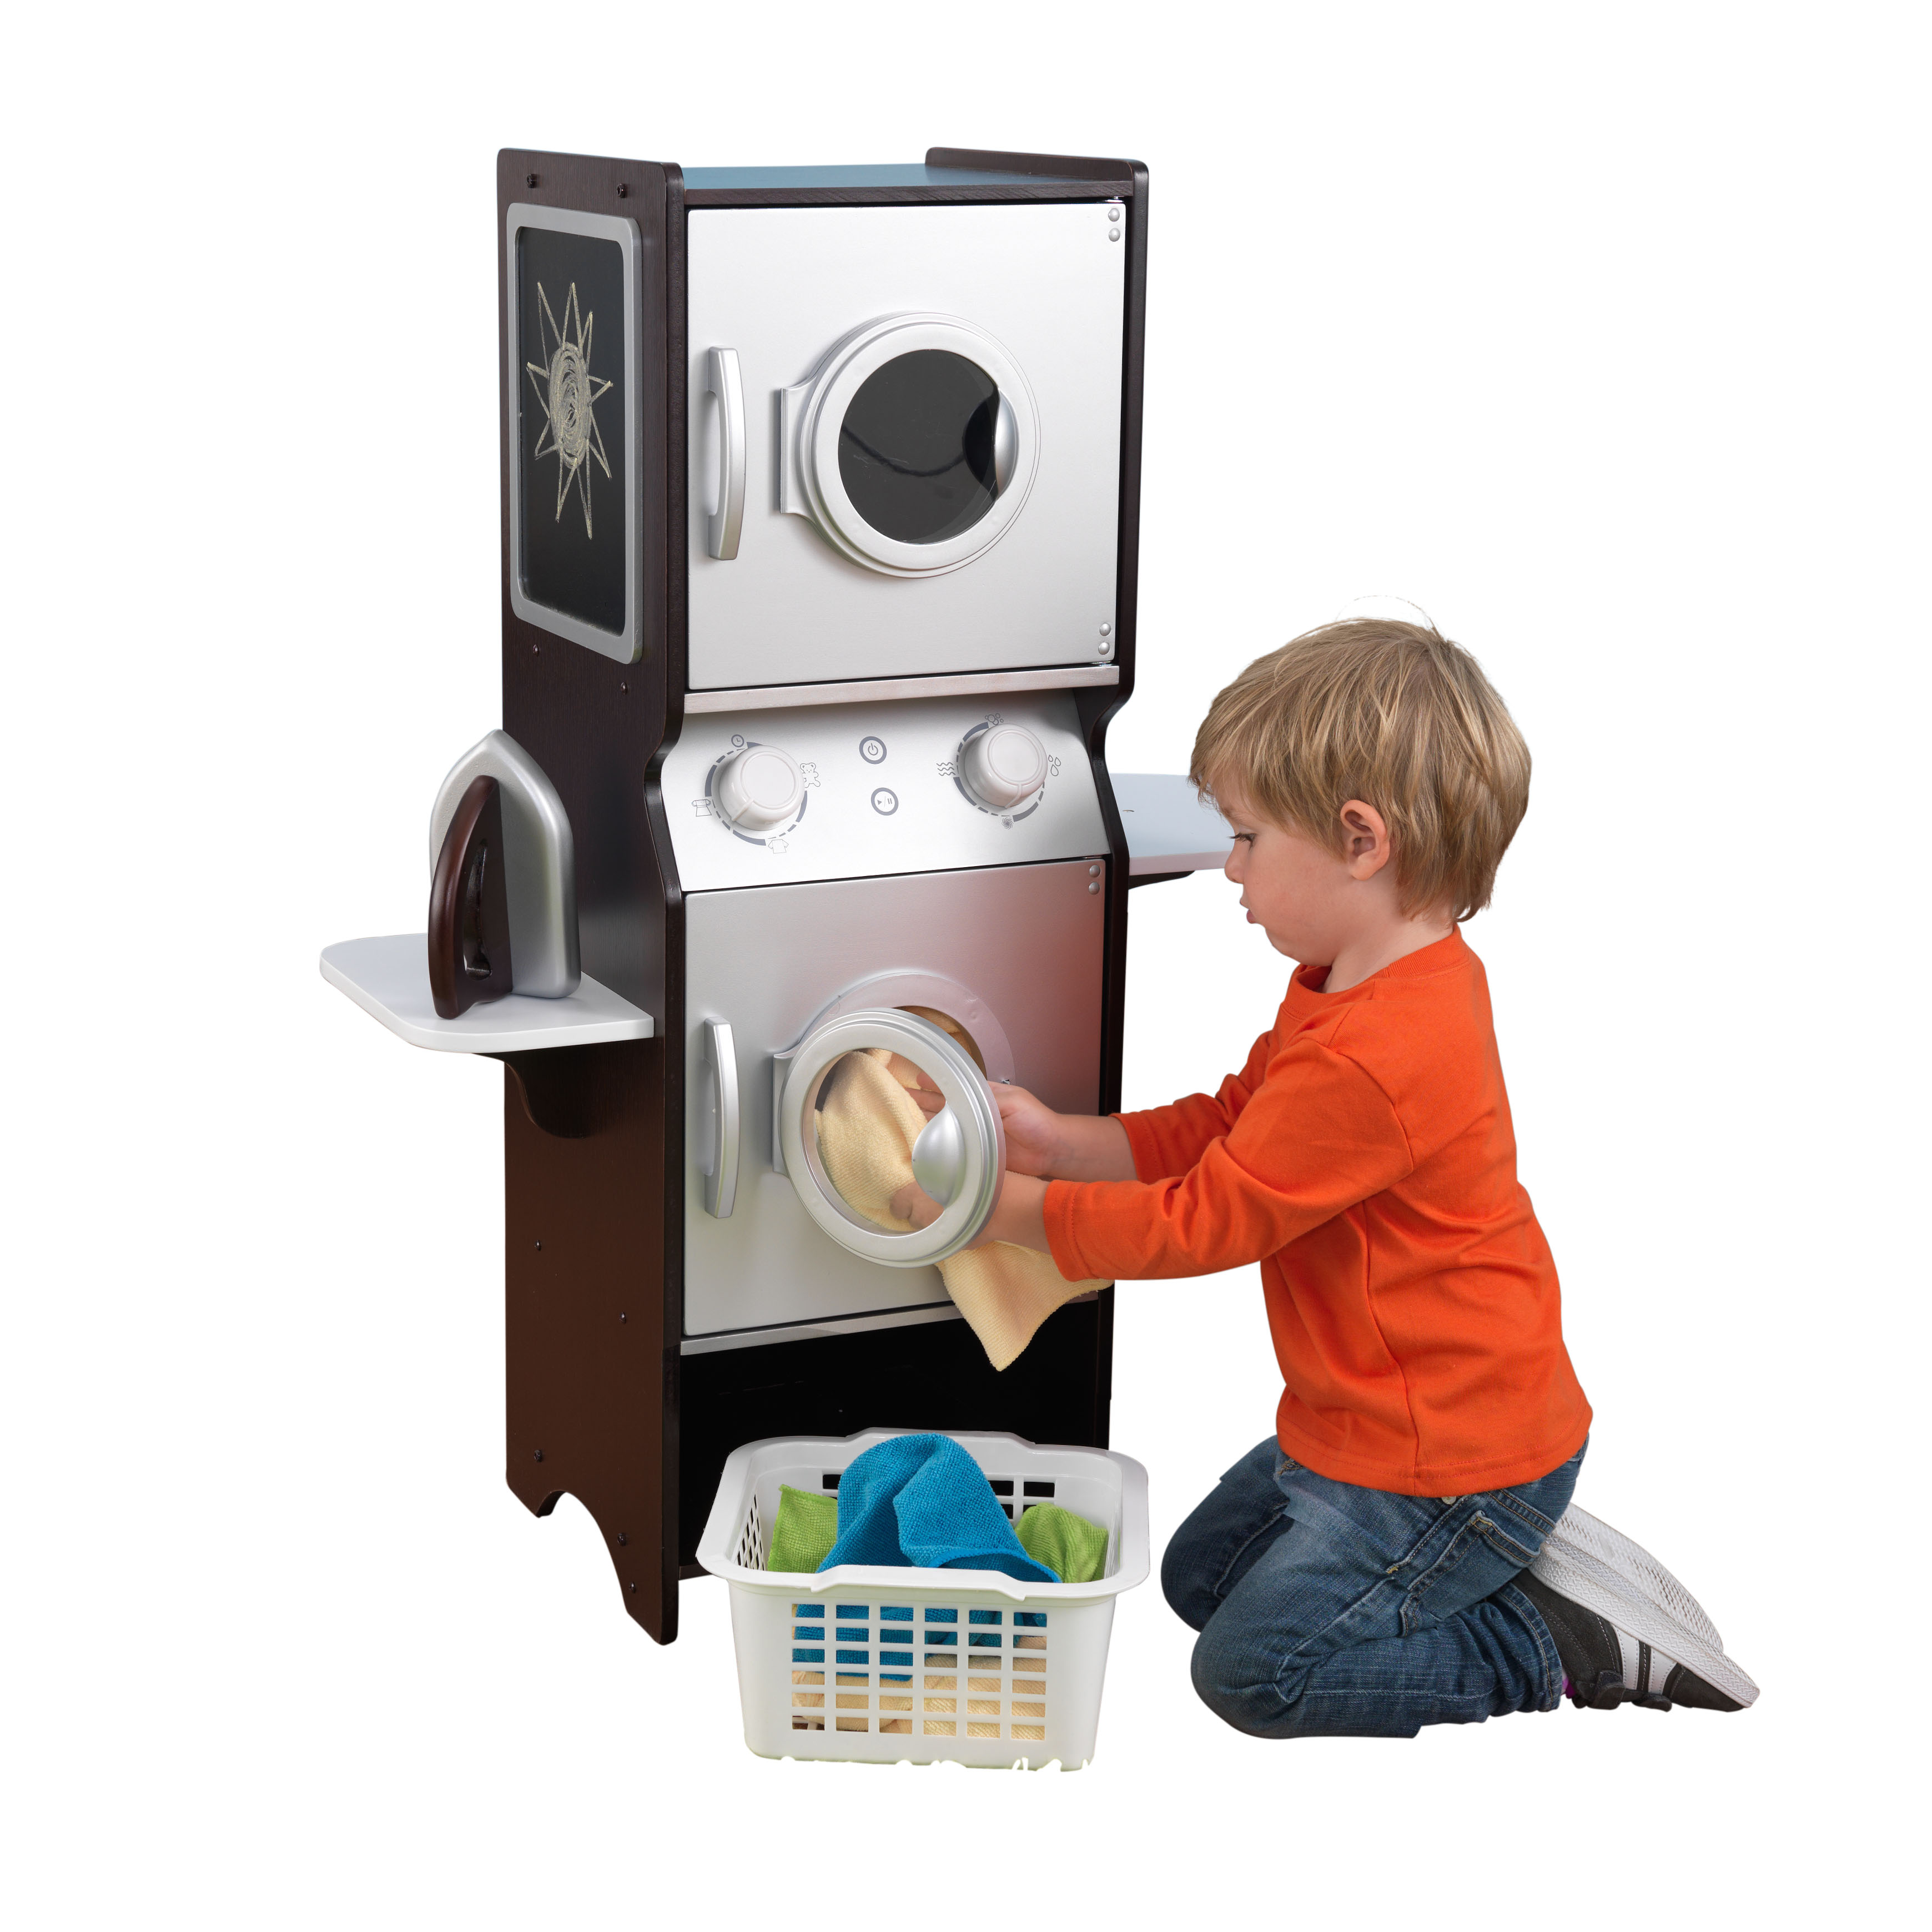 KidKraft Laundry Play Set Espresso by KidKraft